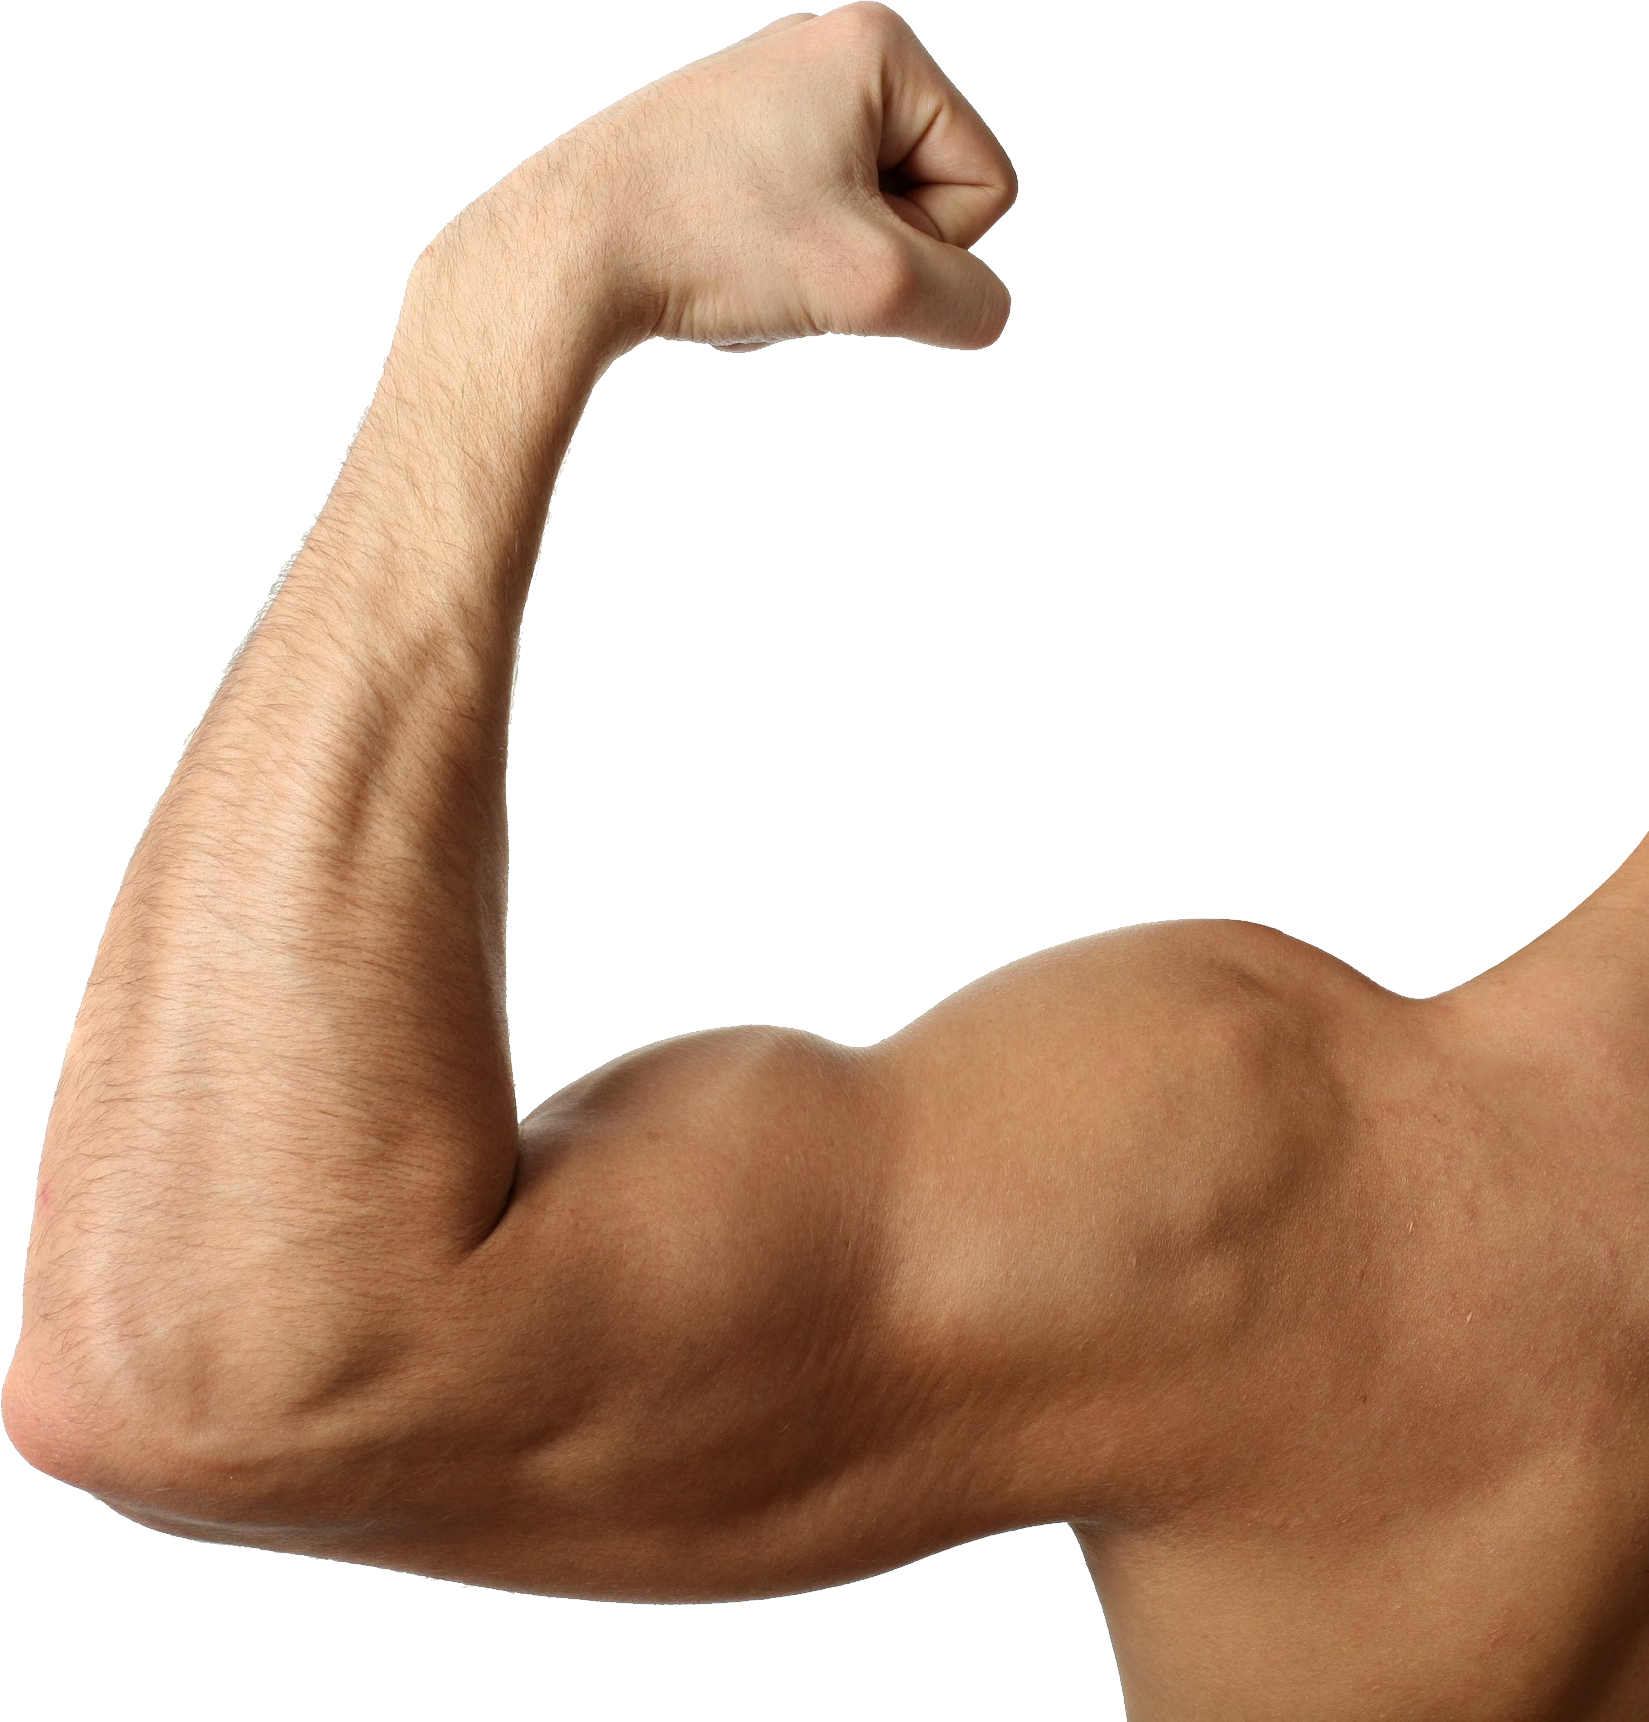 Muscular Arm Png, png collections at sccpre.cat.